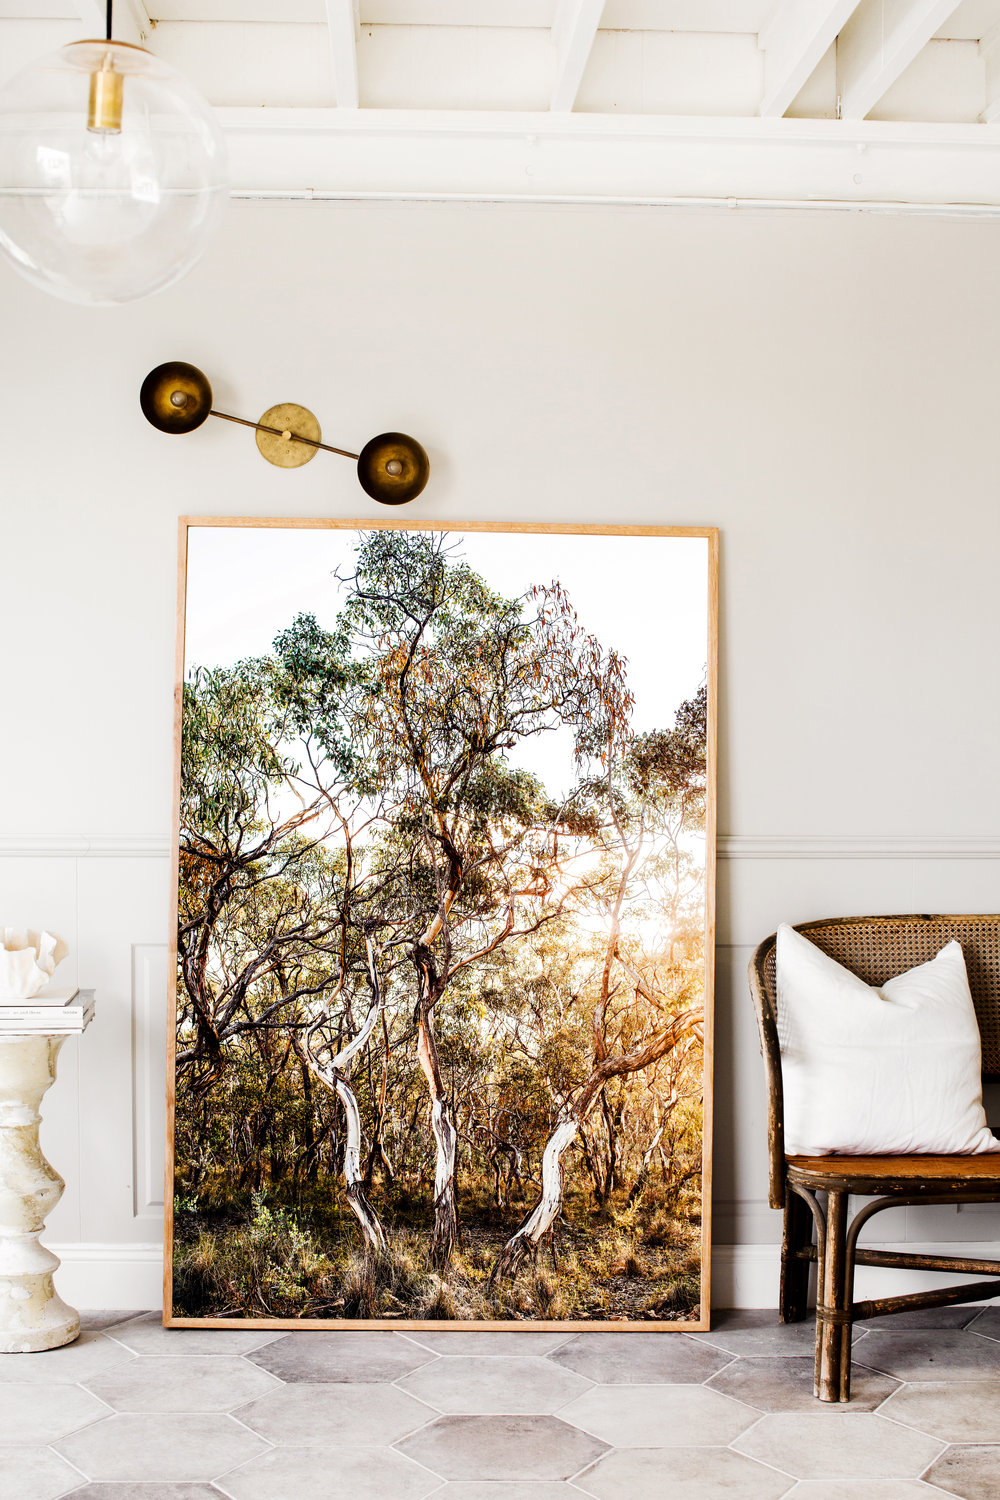 Bridle Track  in Extra Large, framed in Tasmanian Oak in Kara Rosenlund 's new Extra Large size.